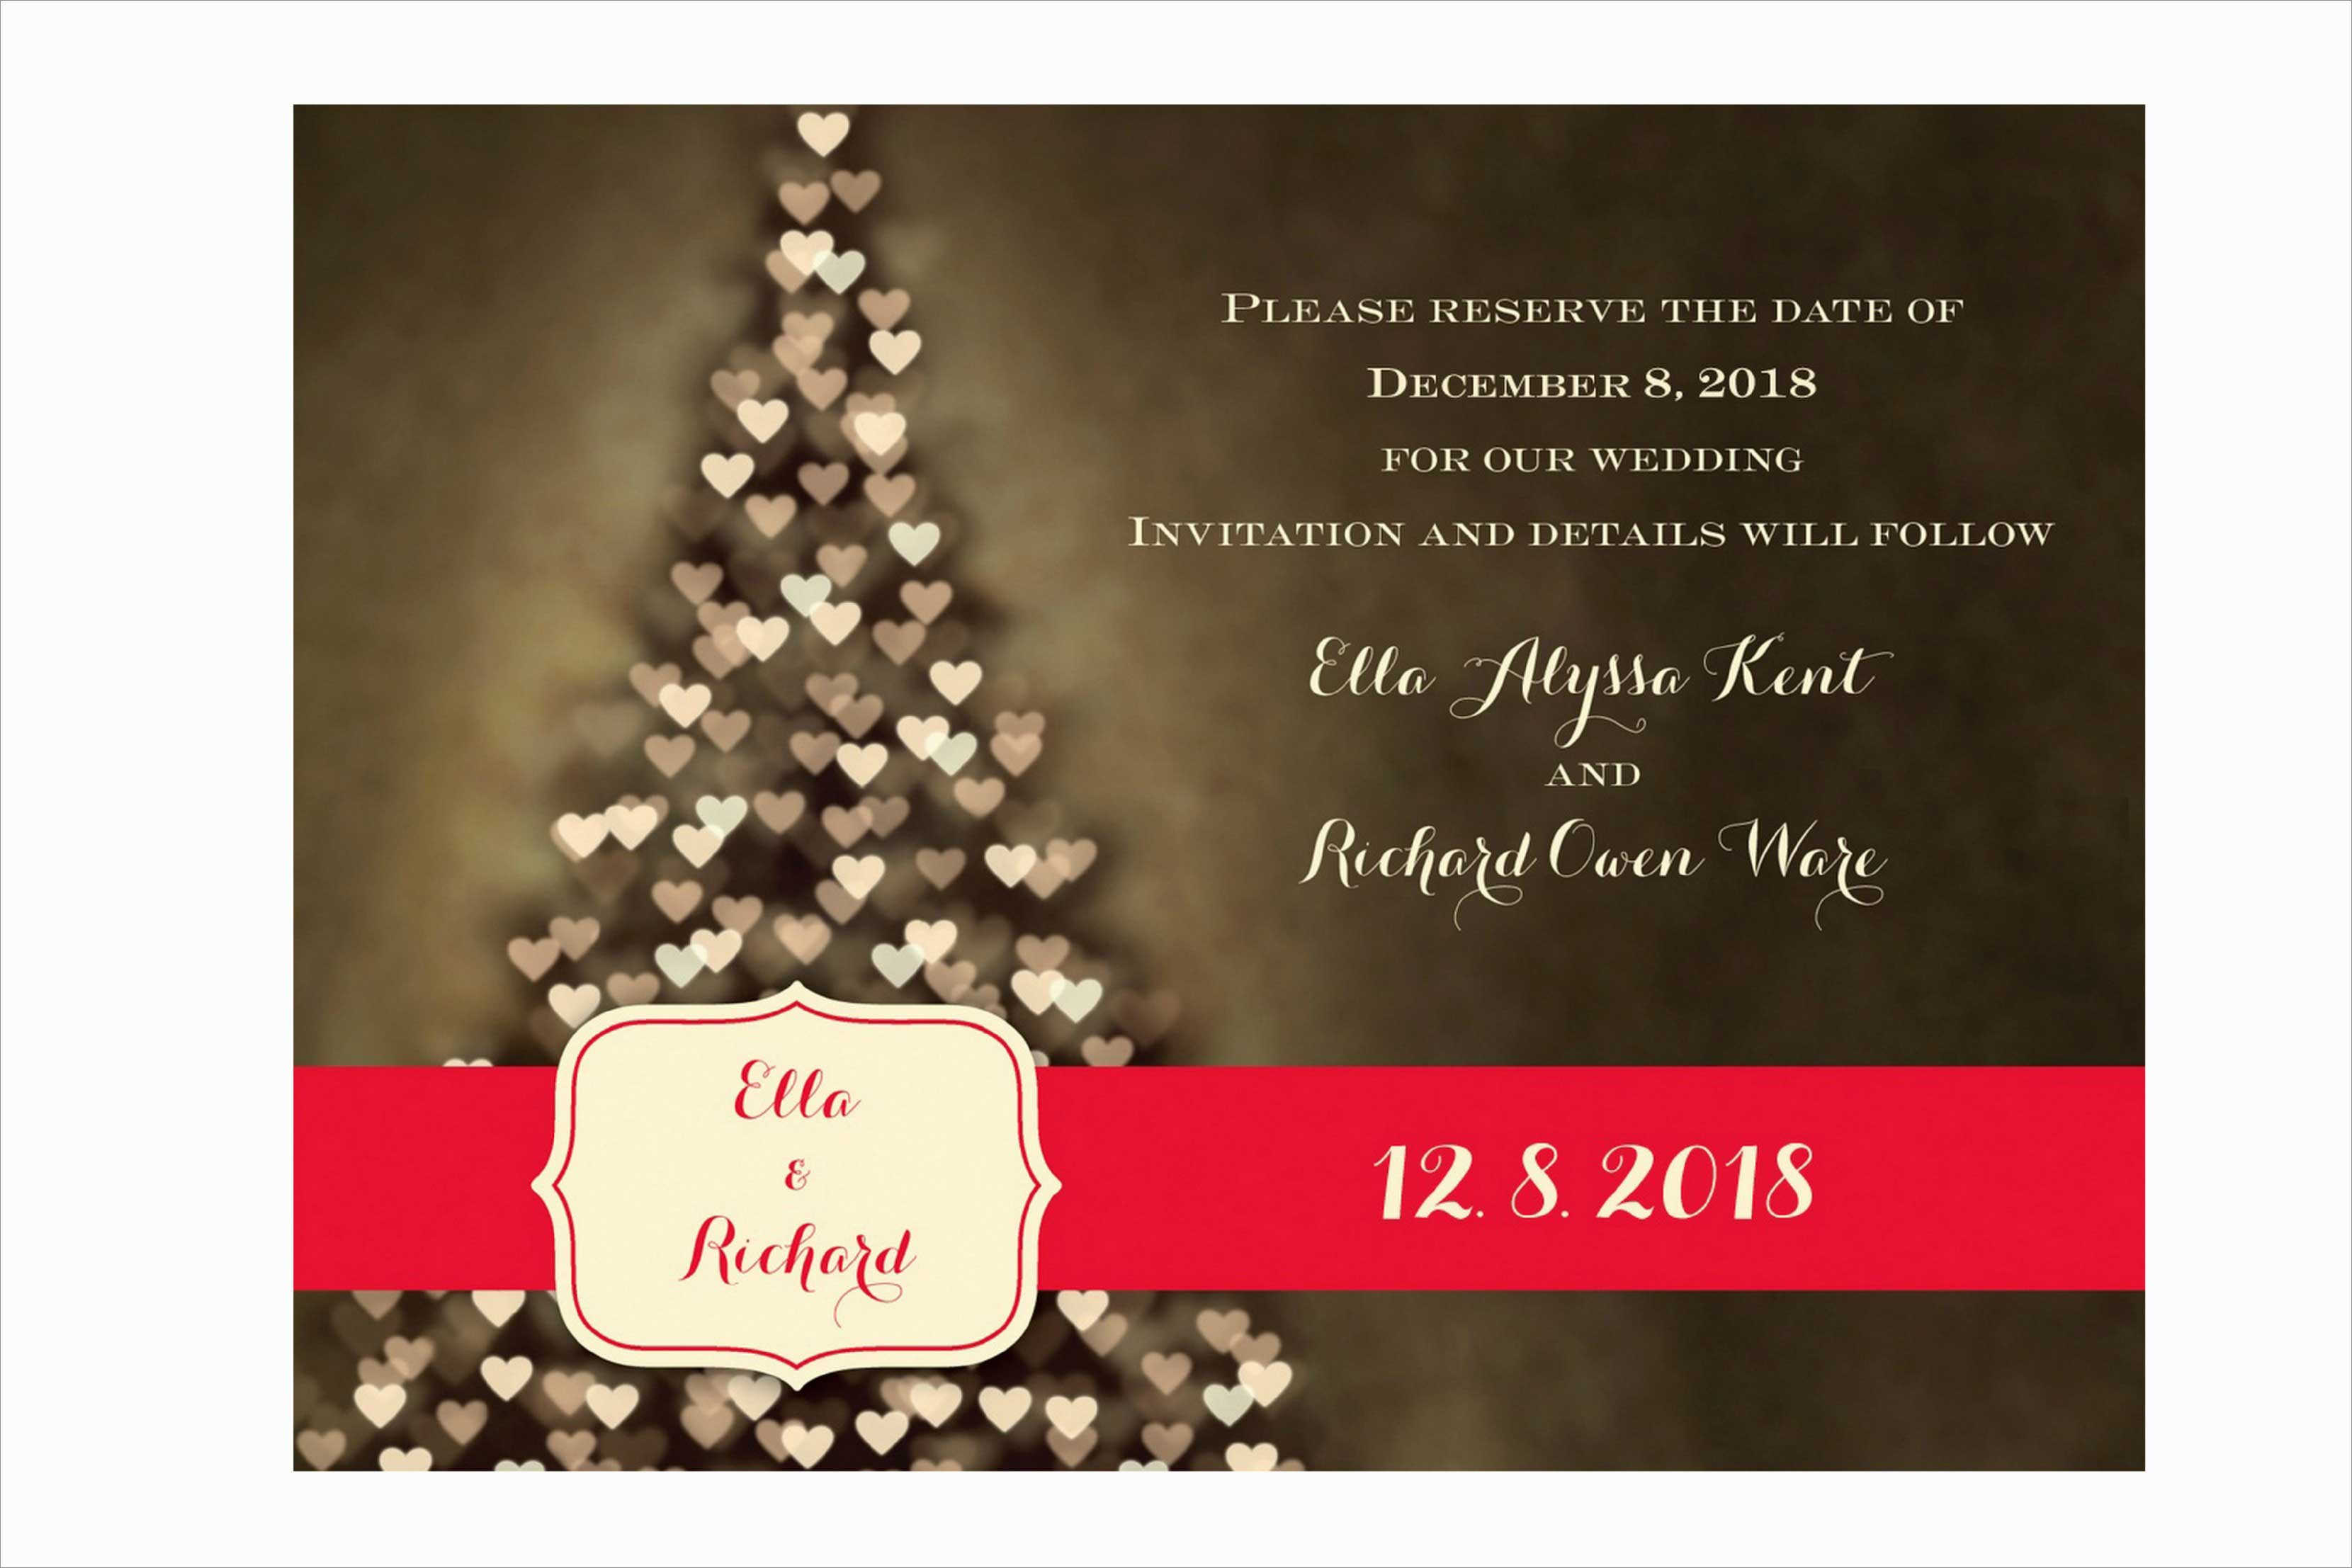 Winter Wedding Ideas: Winter Wedding Invitations - Inside Weddings